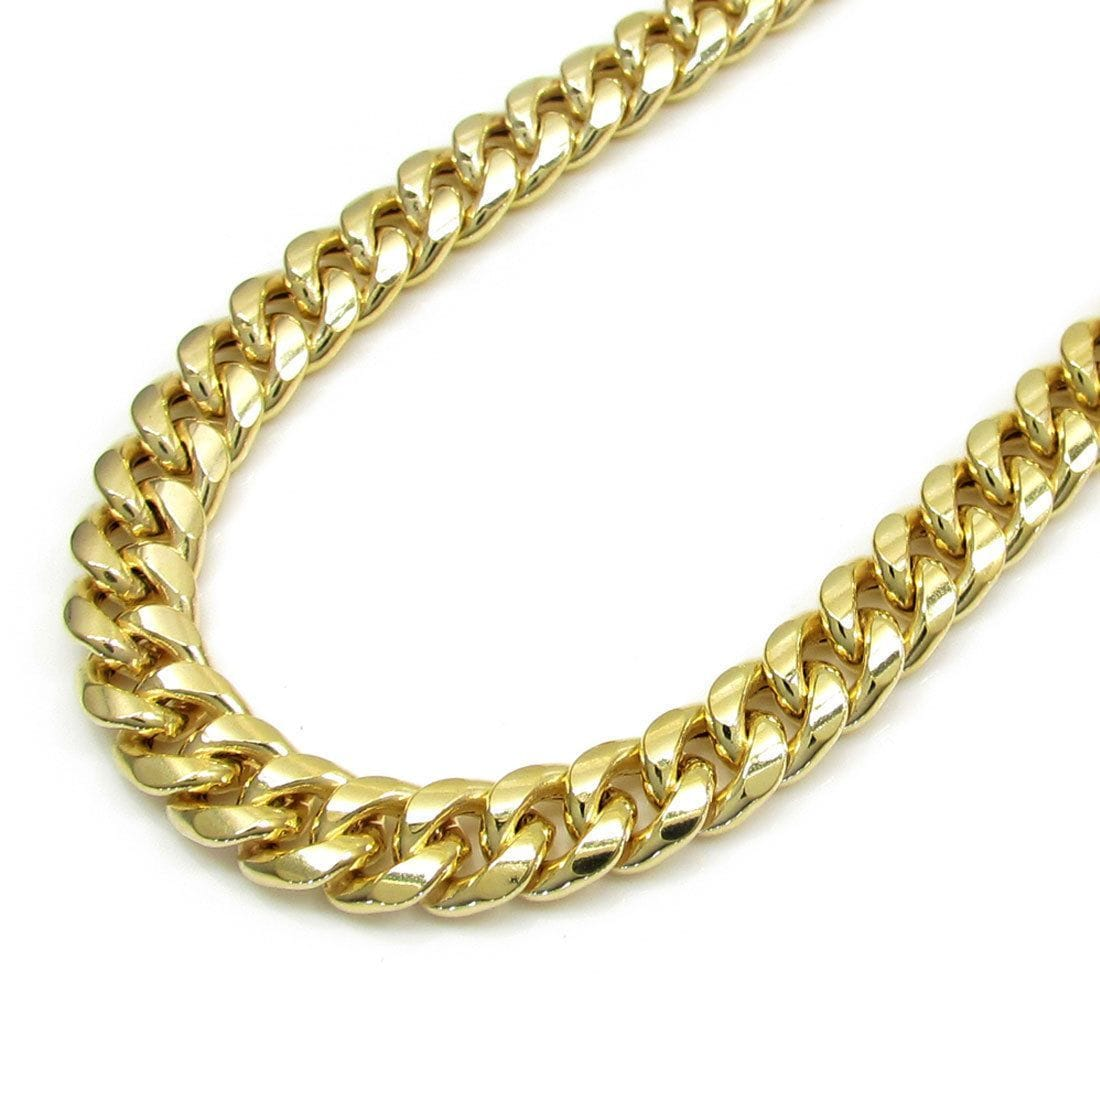 9MM 10K YELLOW GOLD MIAMI CUBAN LINK CHAIN NECKLACE 718022201a